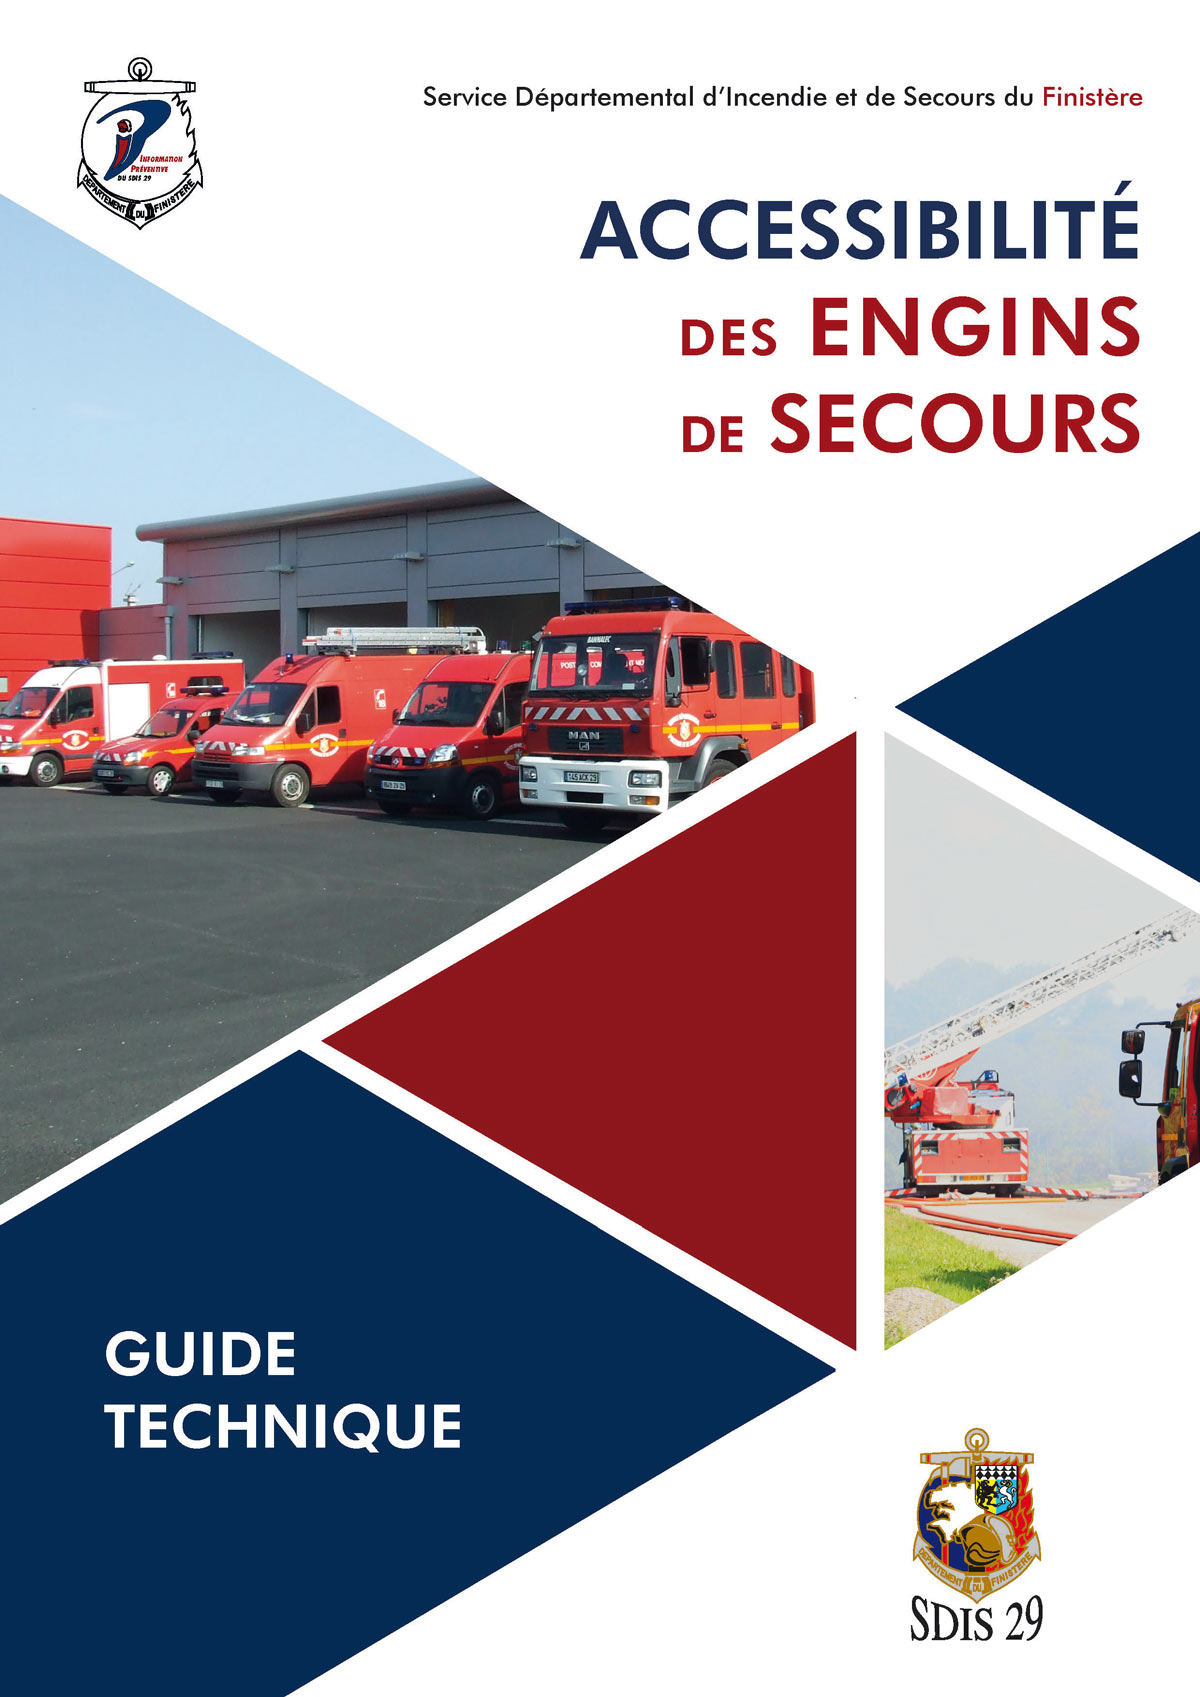 Guide accessibilite engins secours SDIS29 2018 Page 01